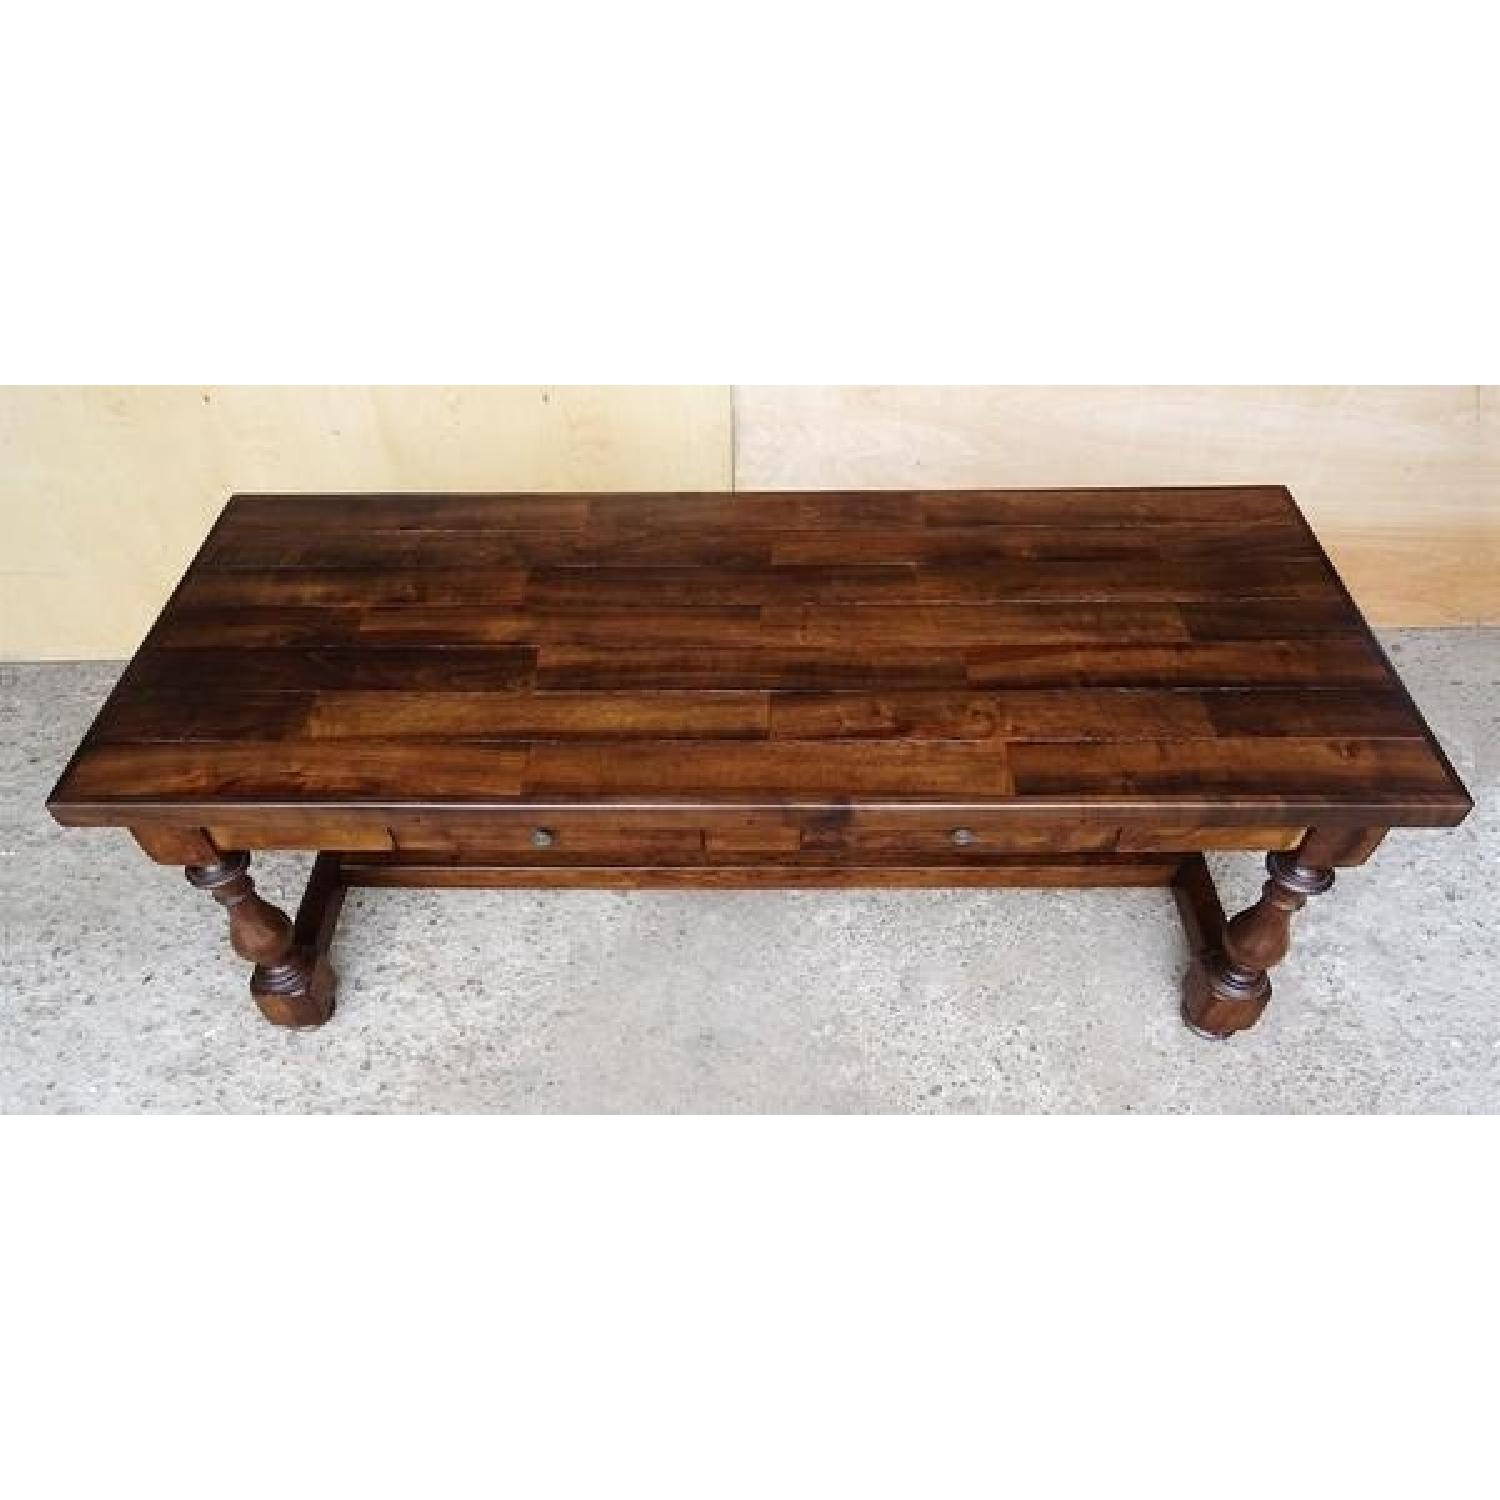 Antique French Country Style Refectory Dining Table